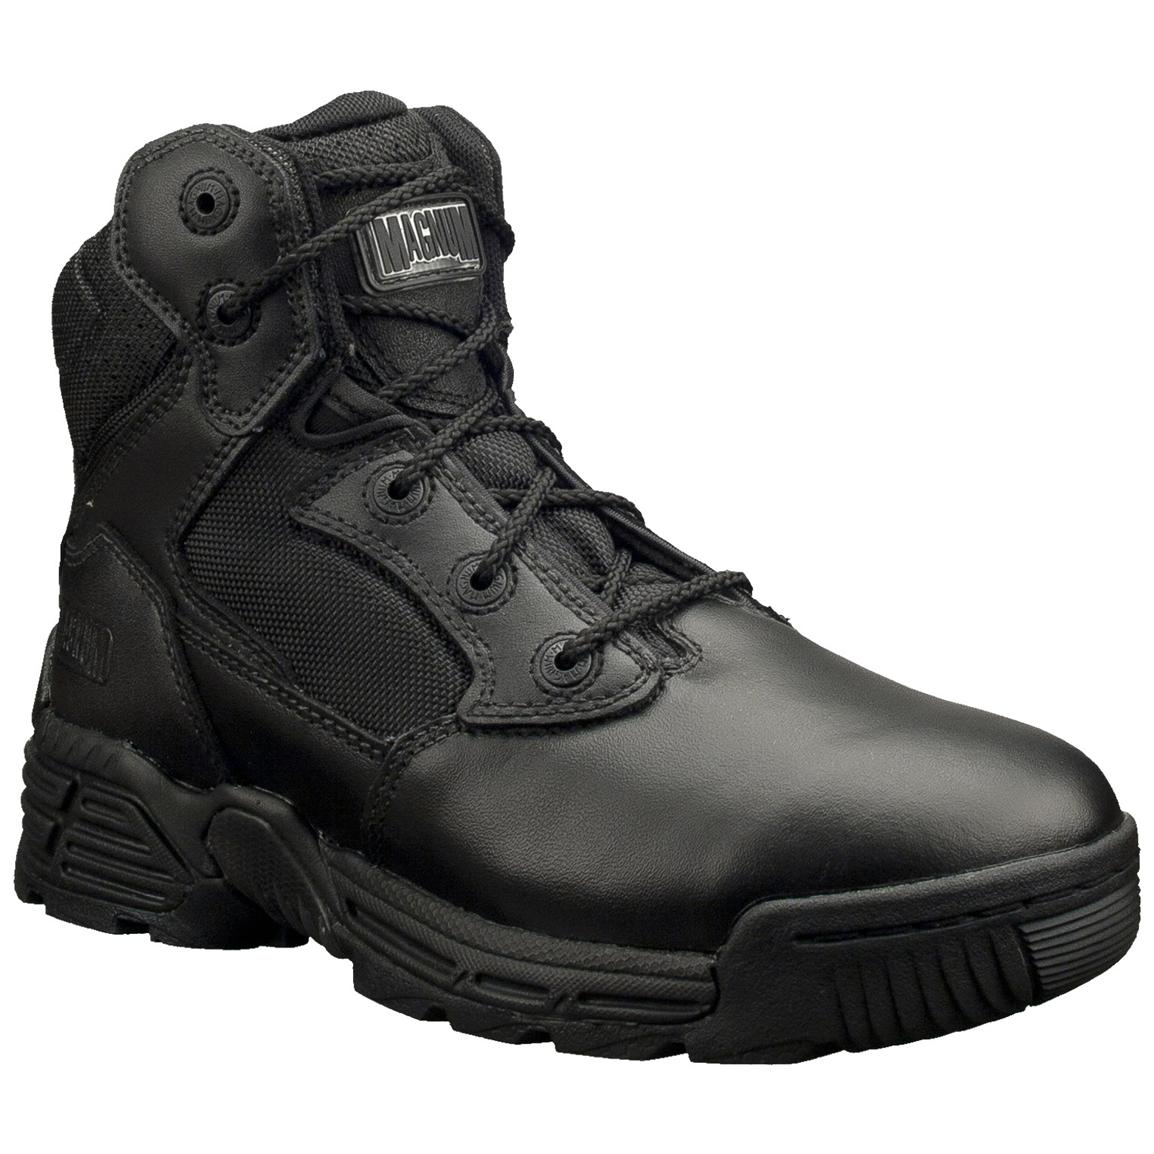 waterproof combat boots womens with lastest type